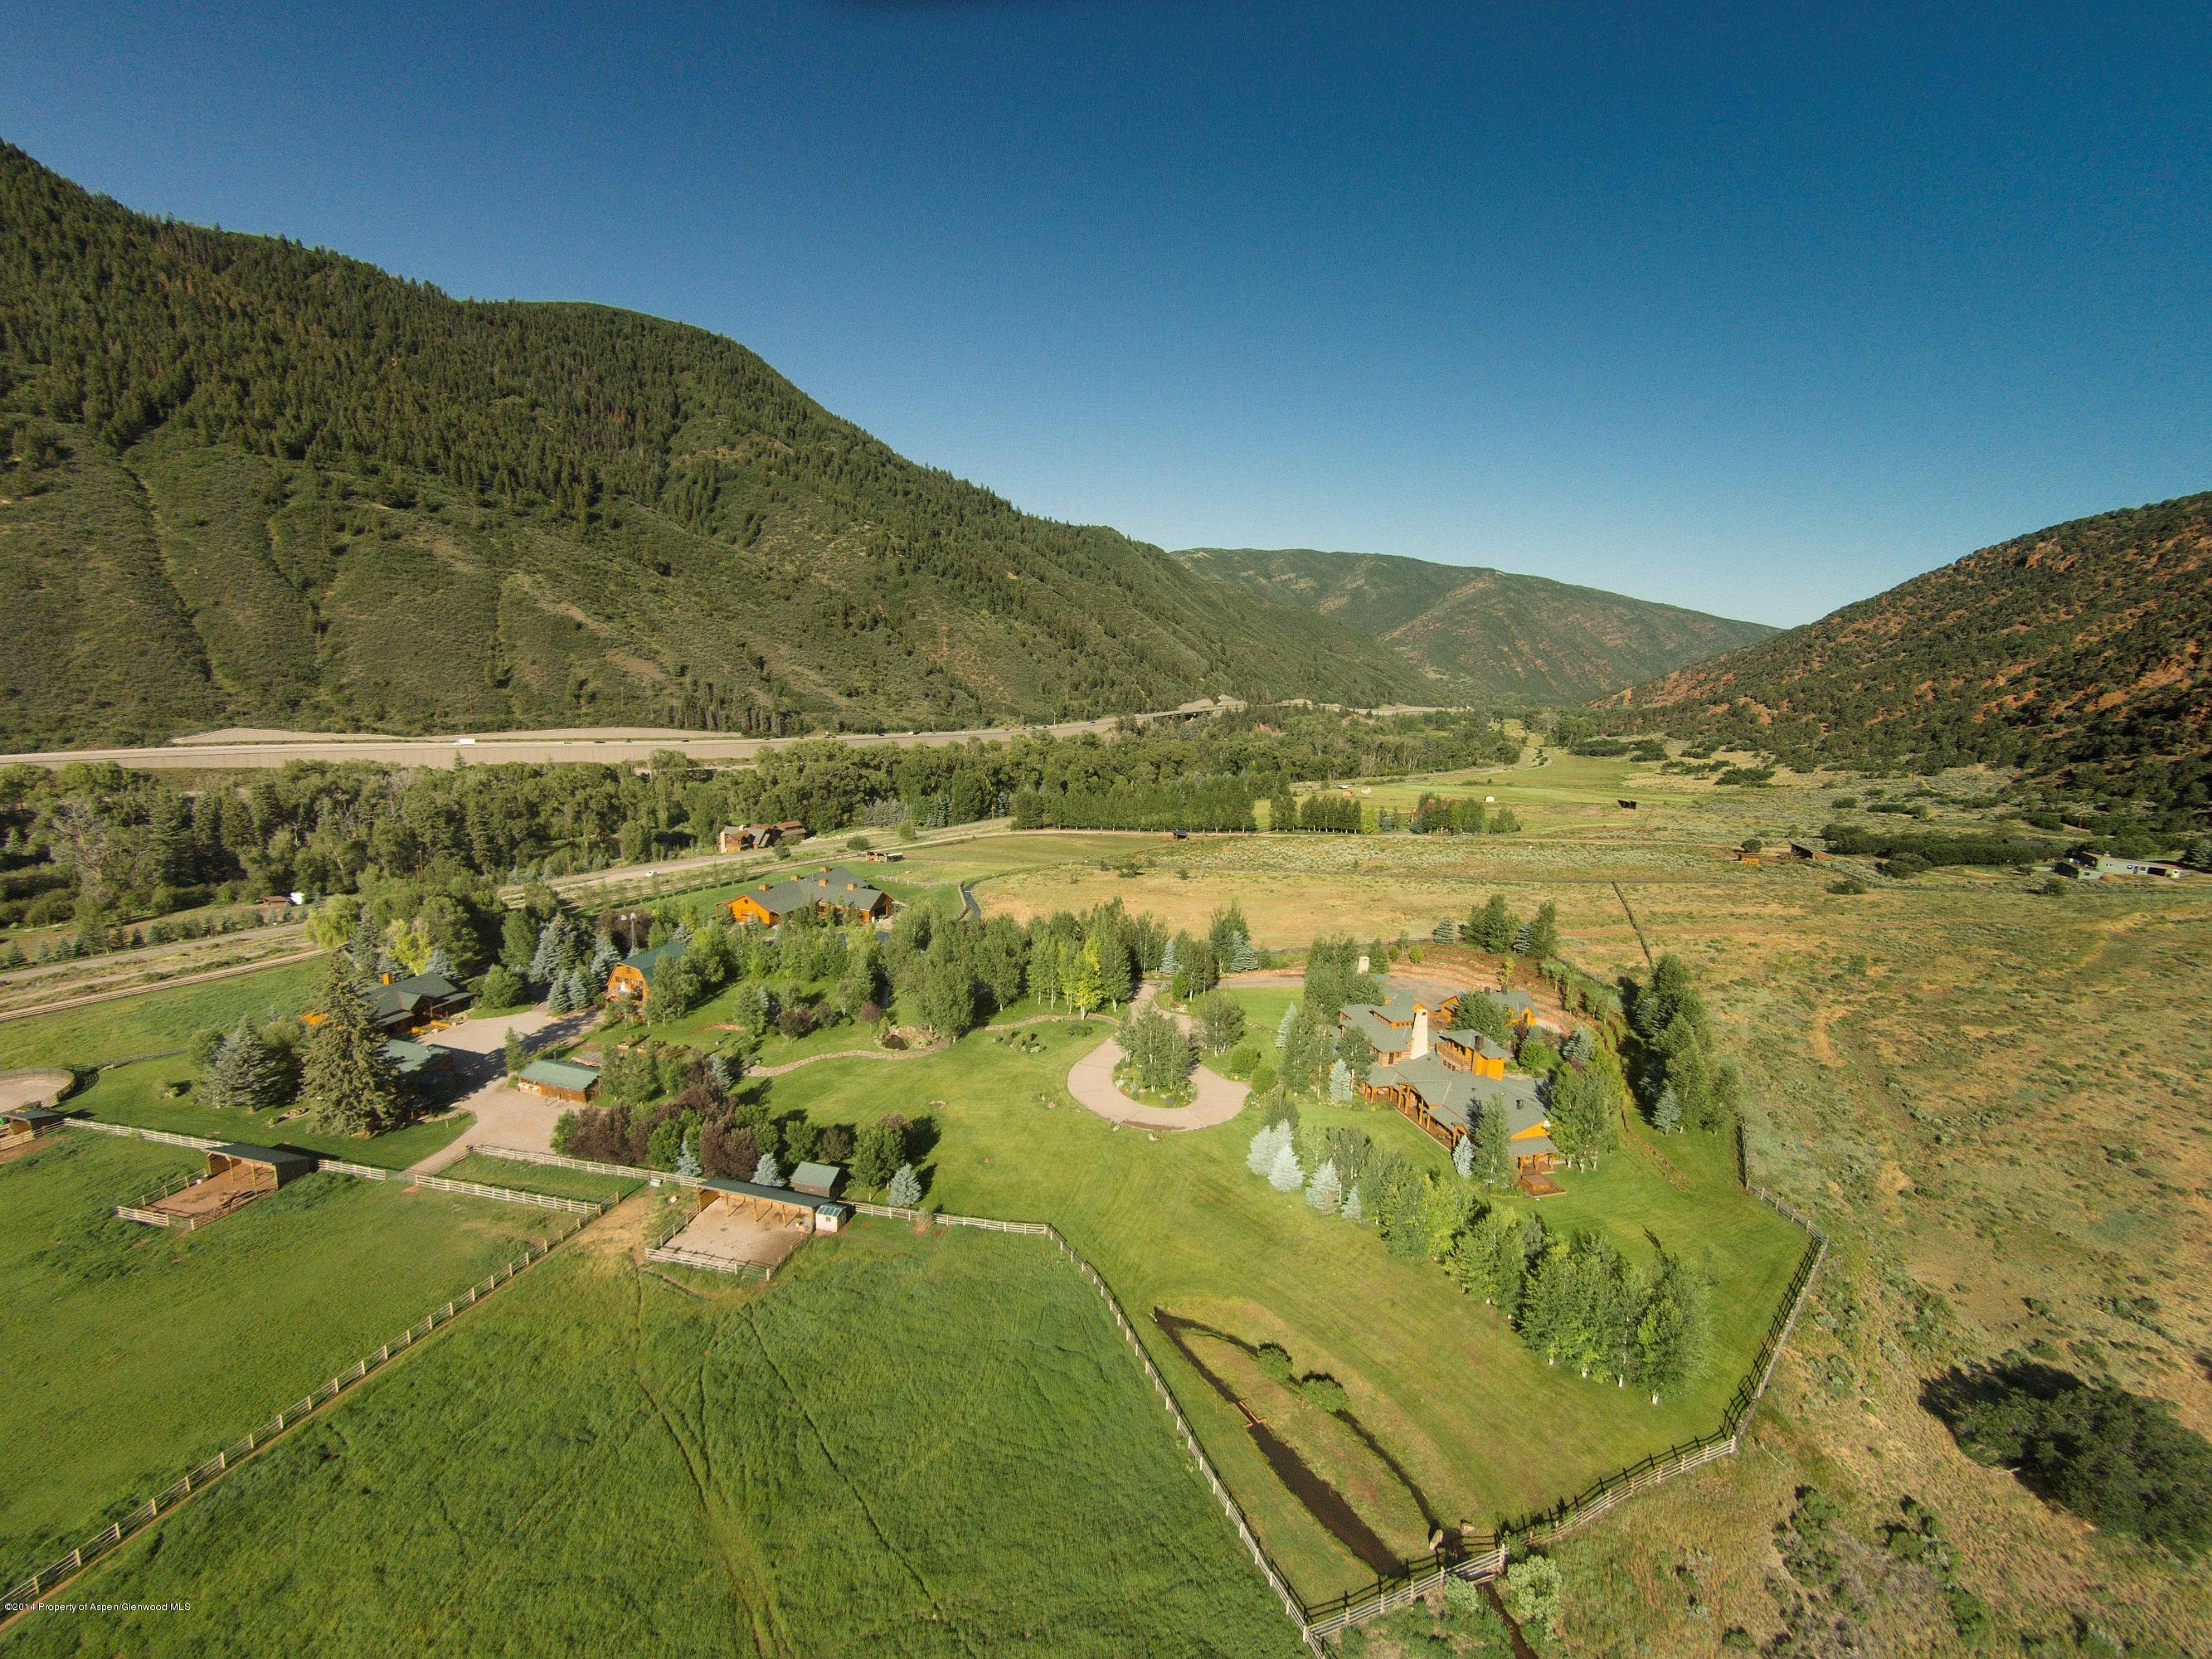 MLS# 135595 - 48 - 50 E River Ranch Road, Snowmass, CO 81654